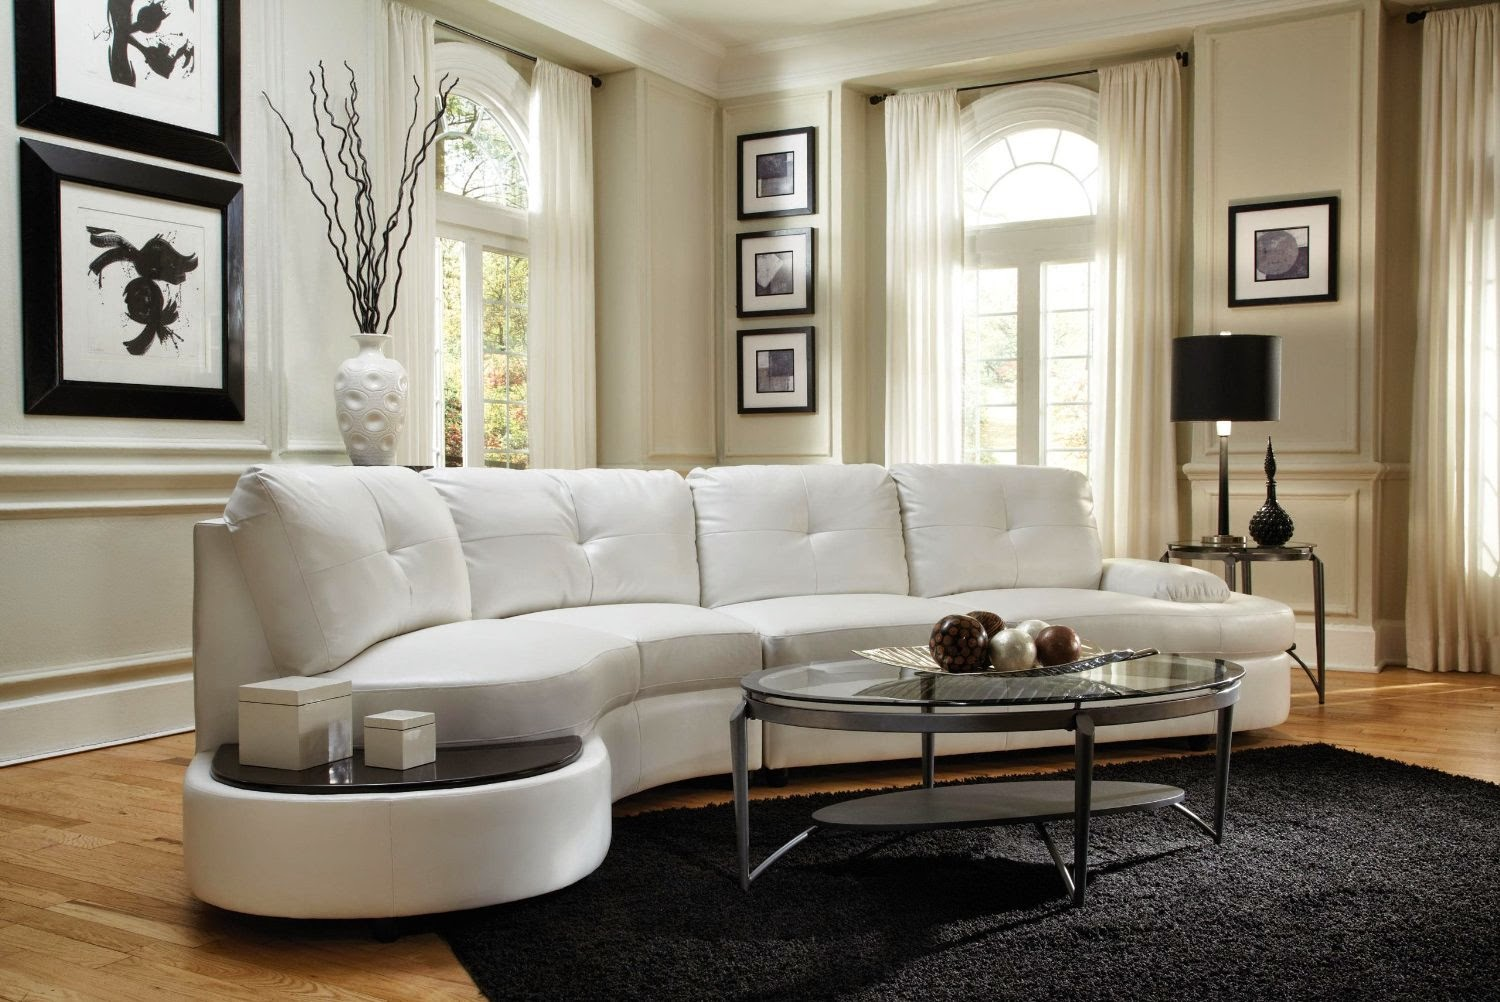 Curved Couch Sofa For Sales Reviews: Curved Loveseat Cuddle Couch